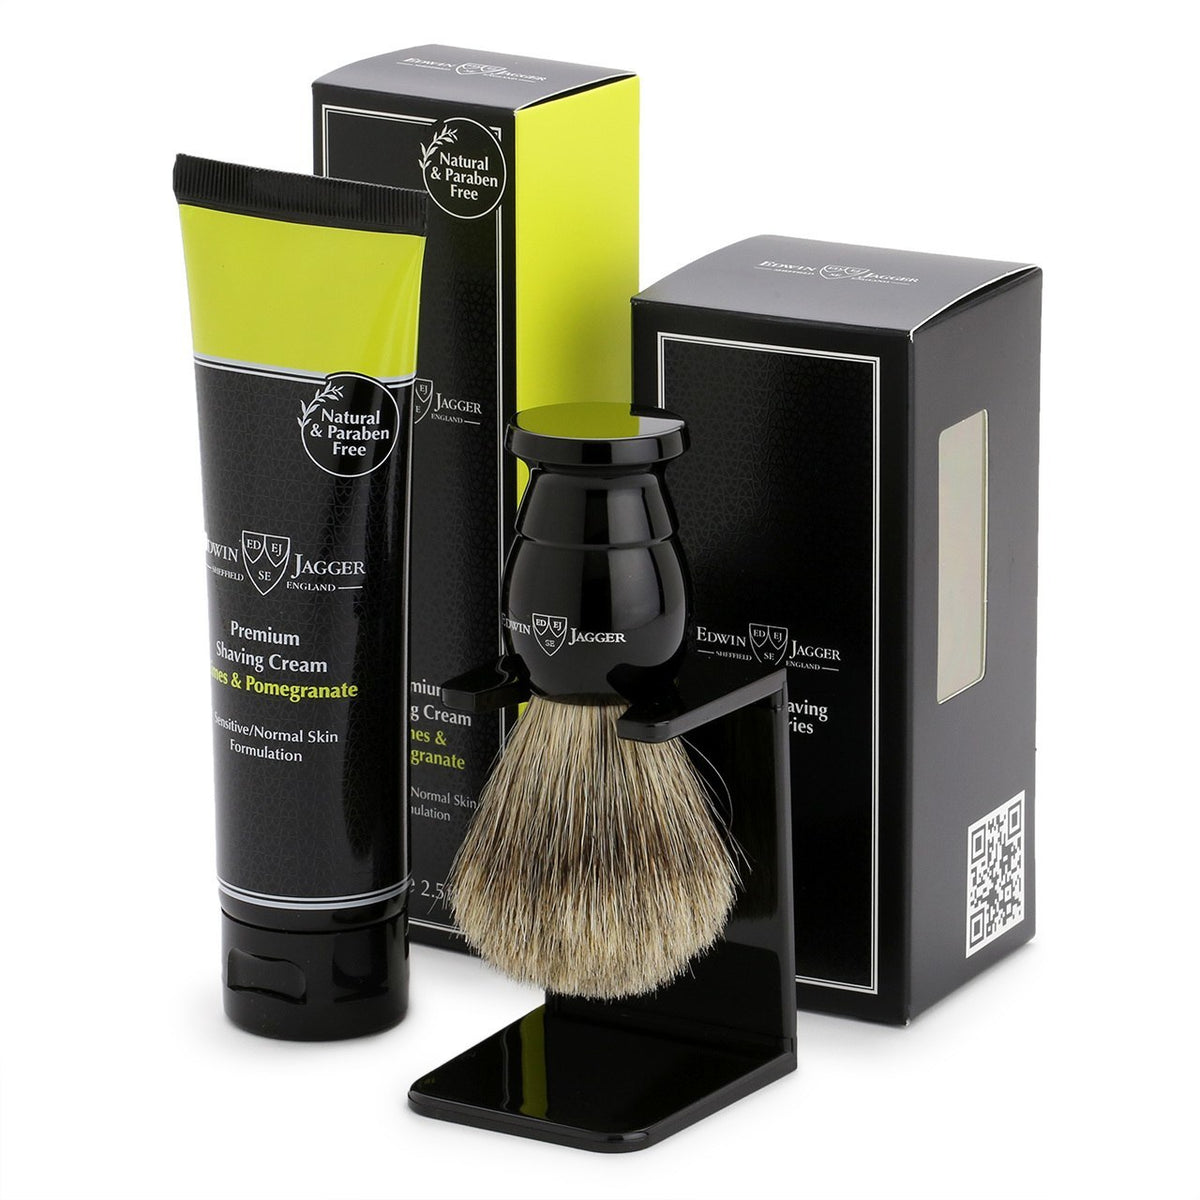 Edwin Jagger Imitation Ebony Shaving Brush and Lime & Pomegranate Shave Cream Gift Set